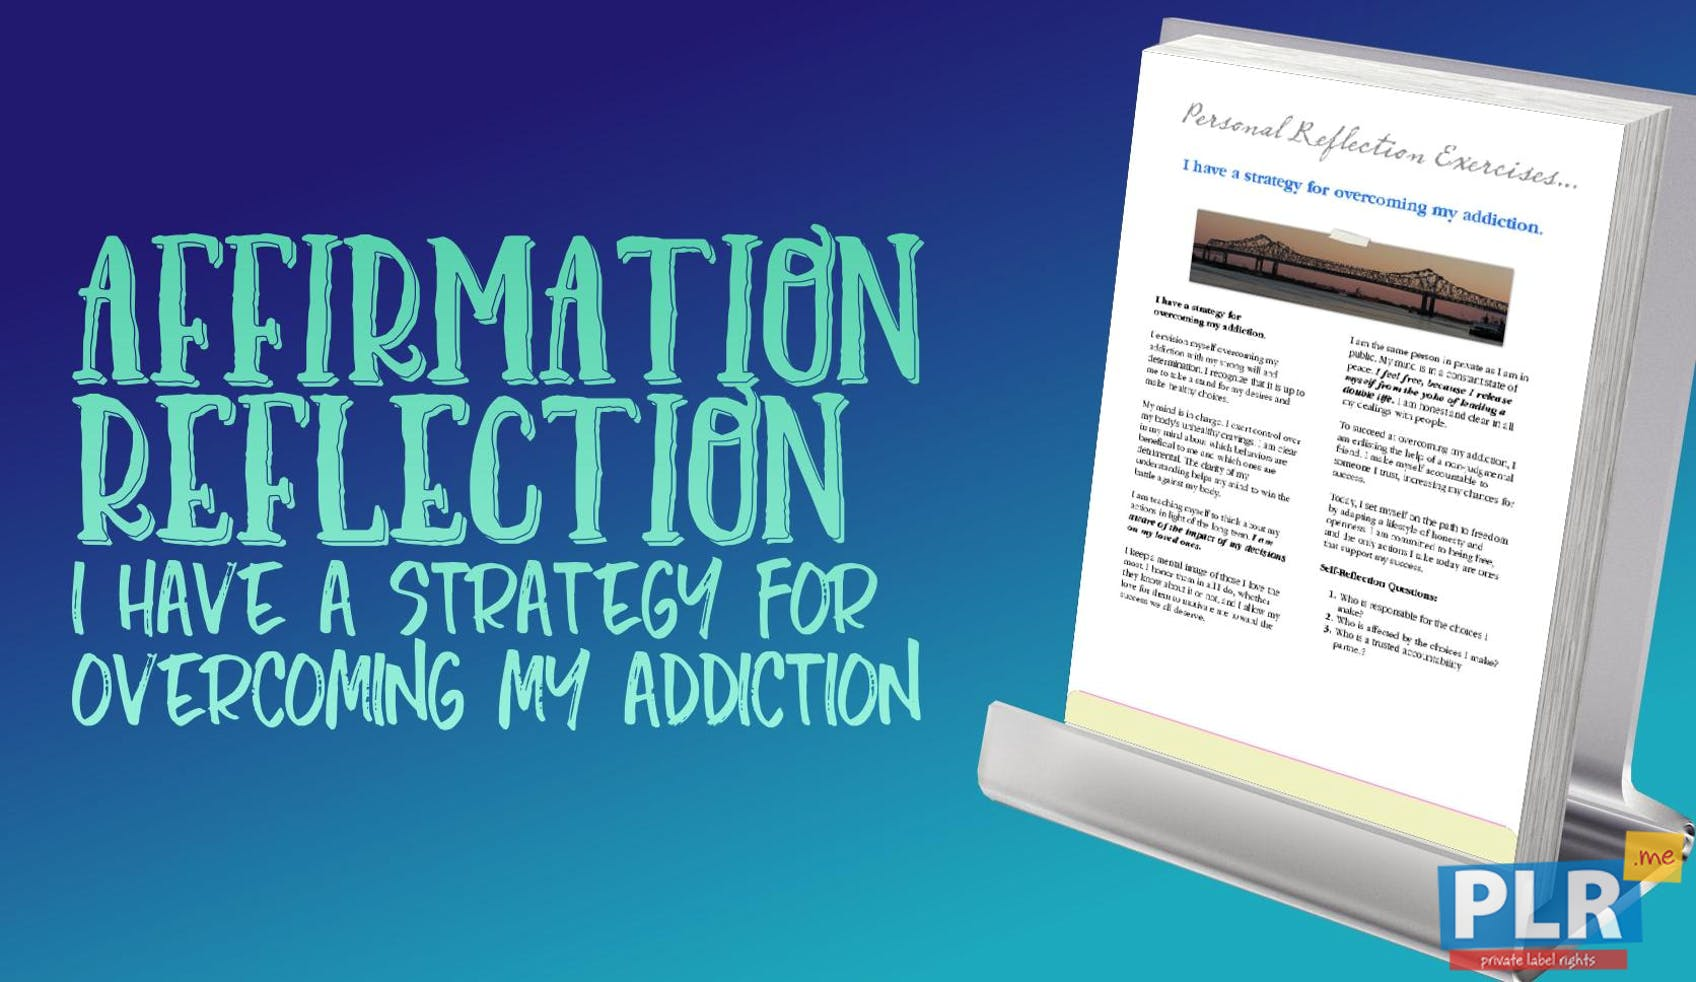 I Have A Strategy For Overcoming My Addiction